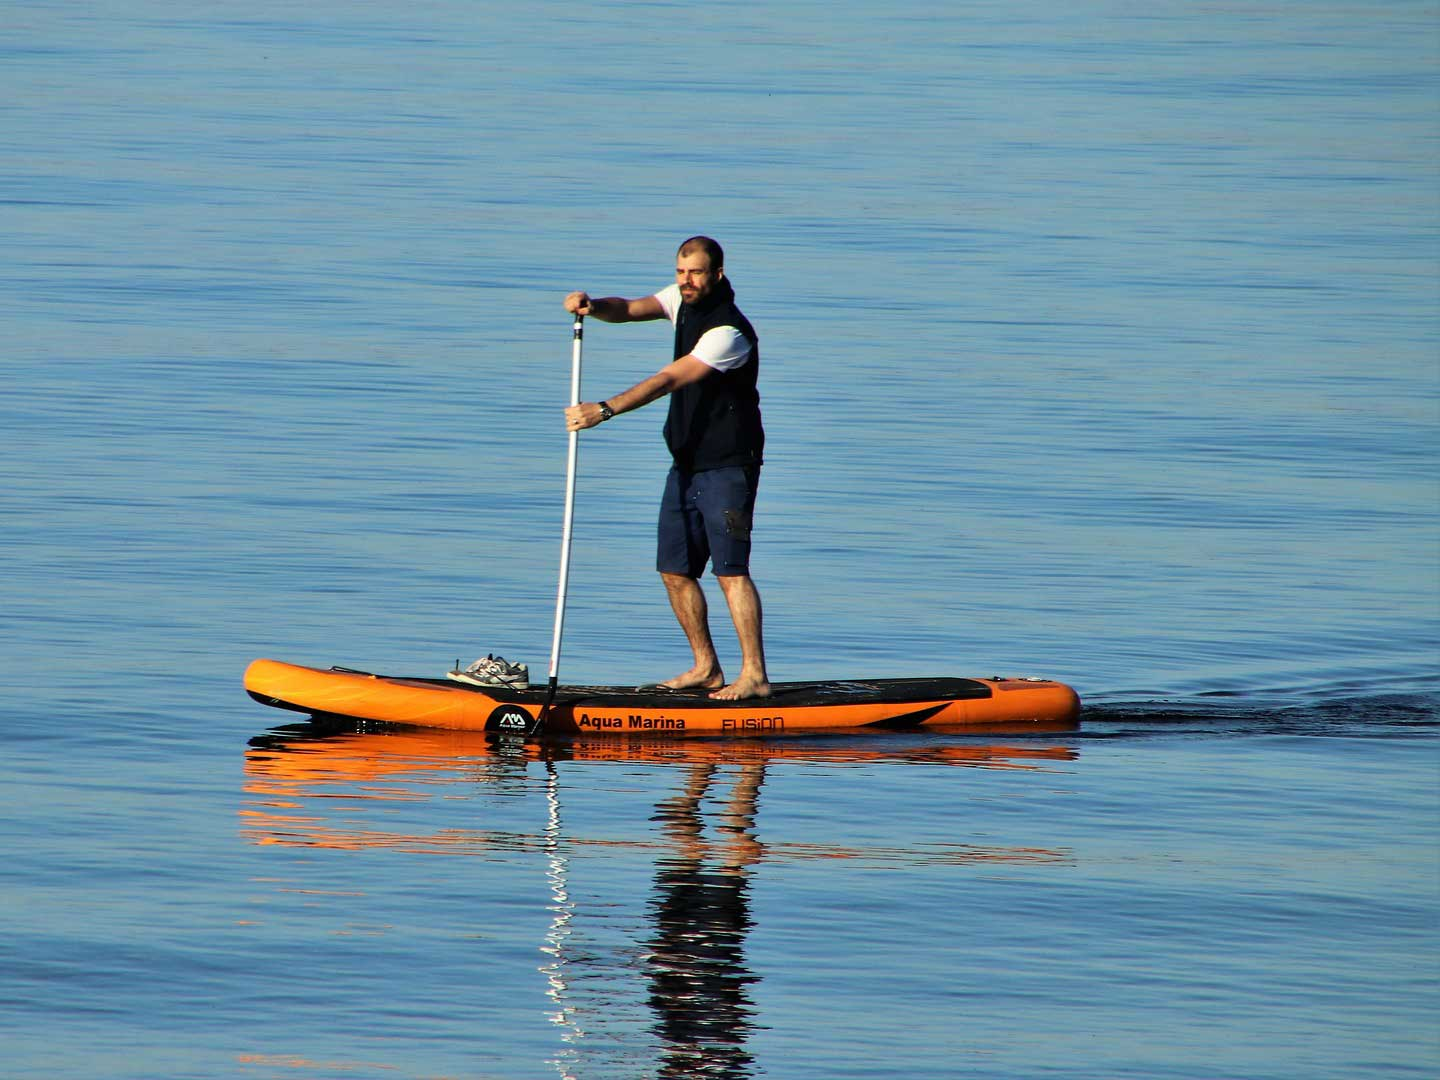 Man standing on inflatable watercraft